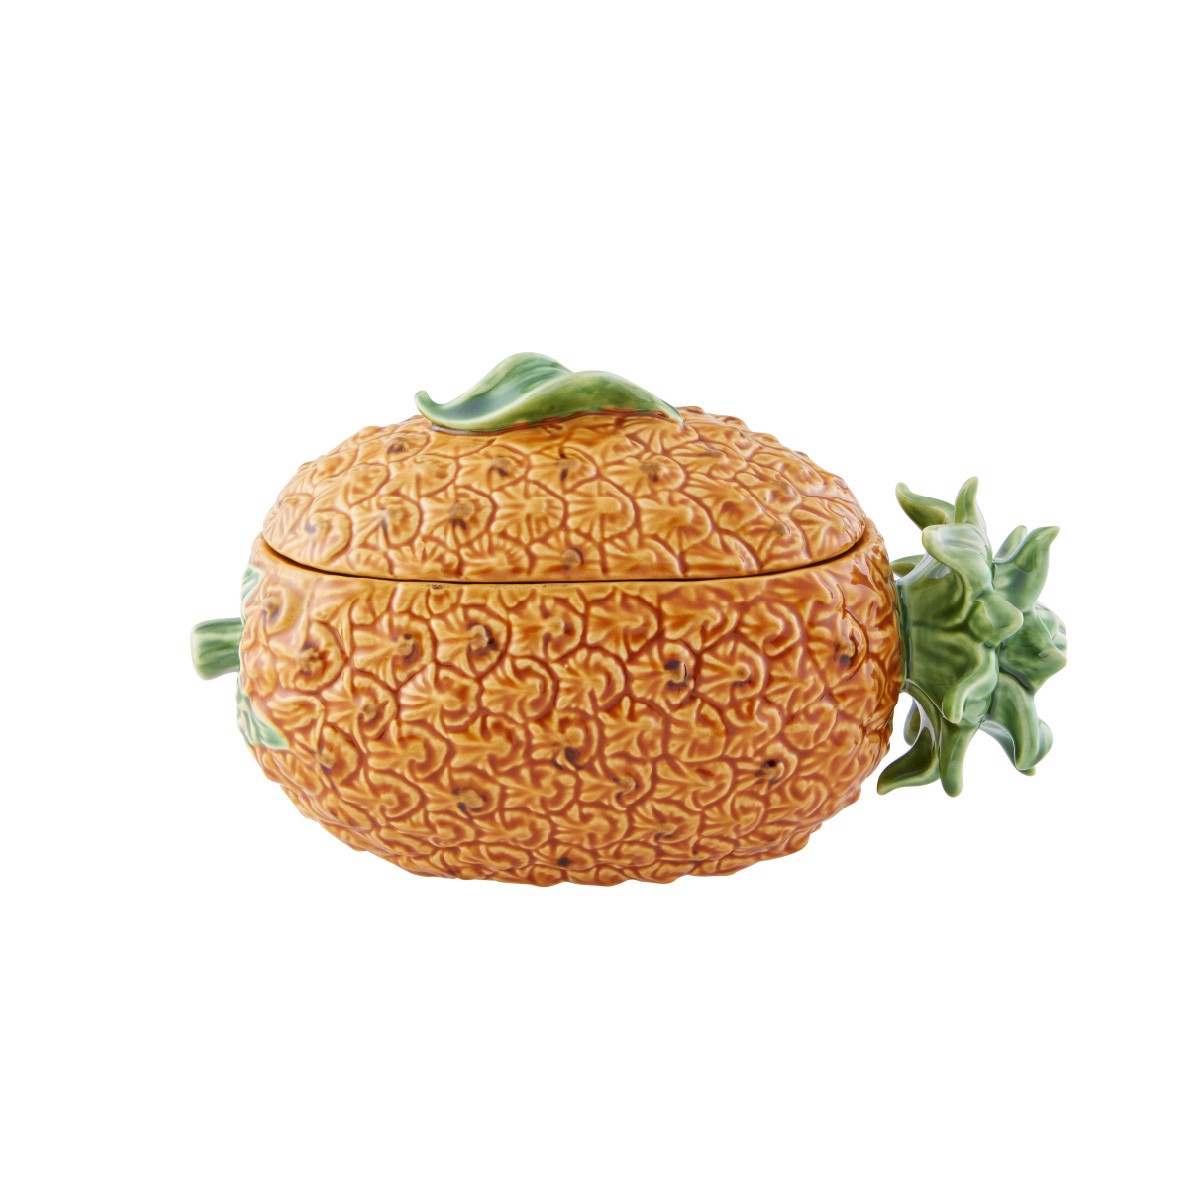 Bordallo - Pineapple - Tureen - 1.5L